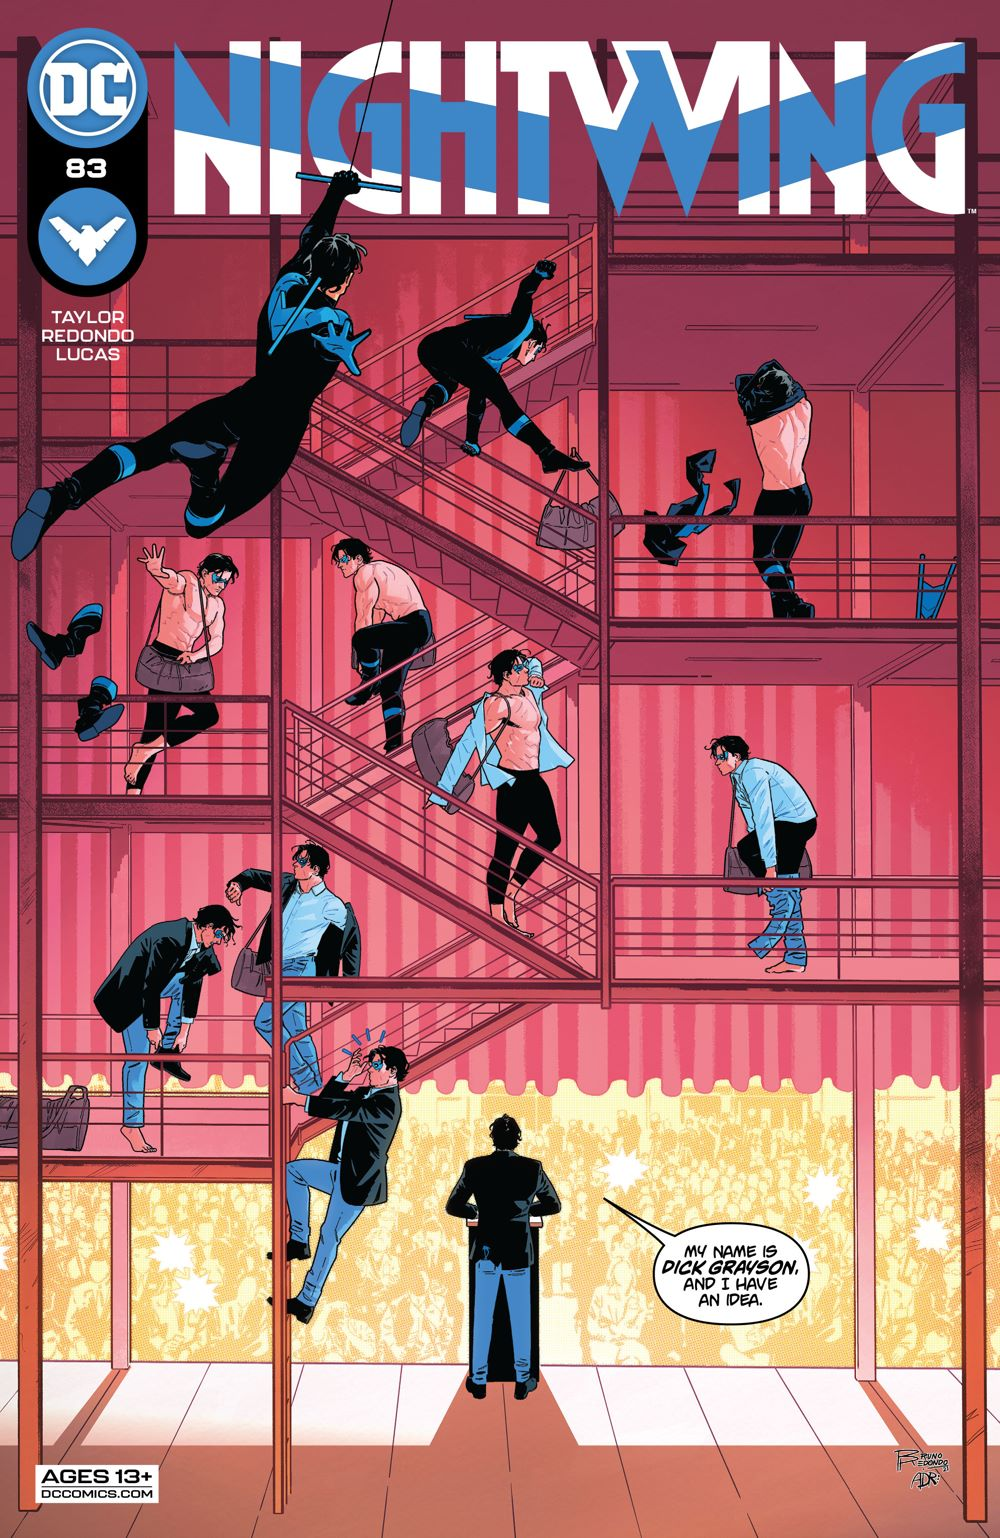 Nightwing-83-1_6115c6fe977263.97007452 ComicList Previews: NIGHTWING #83